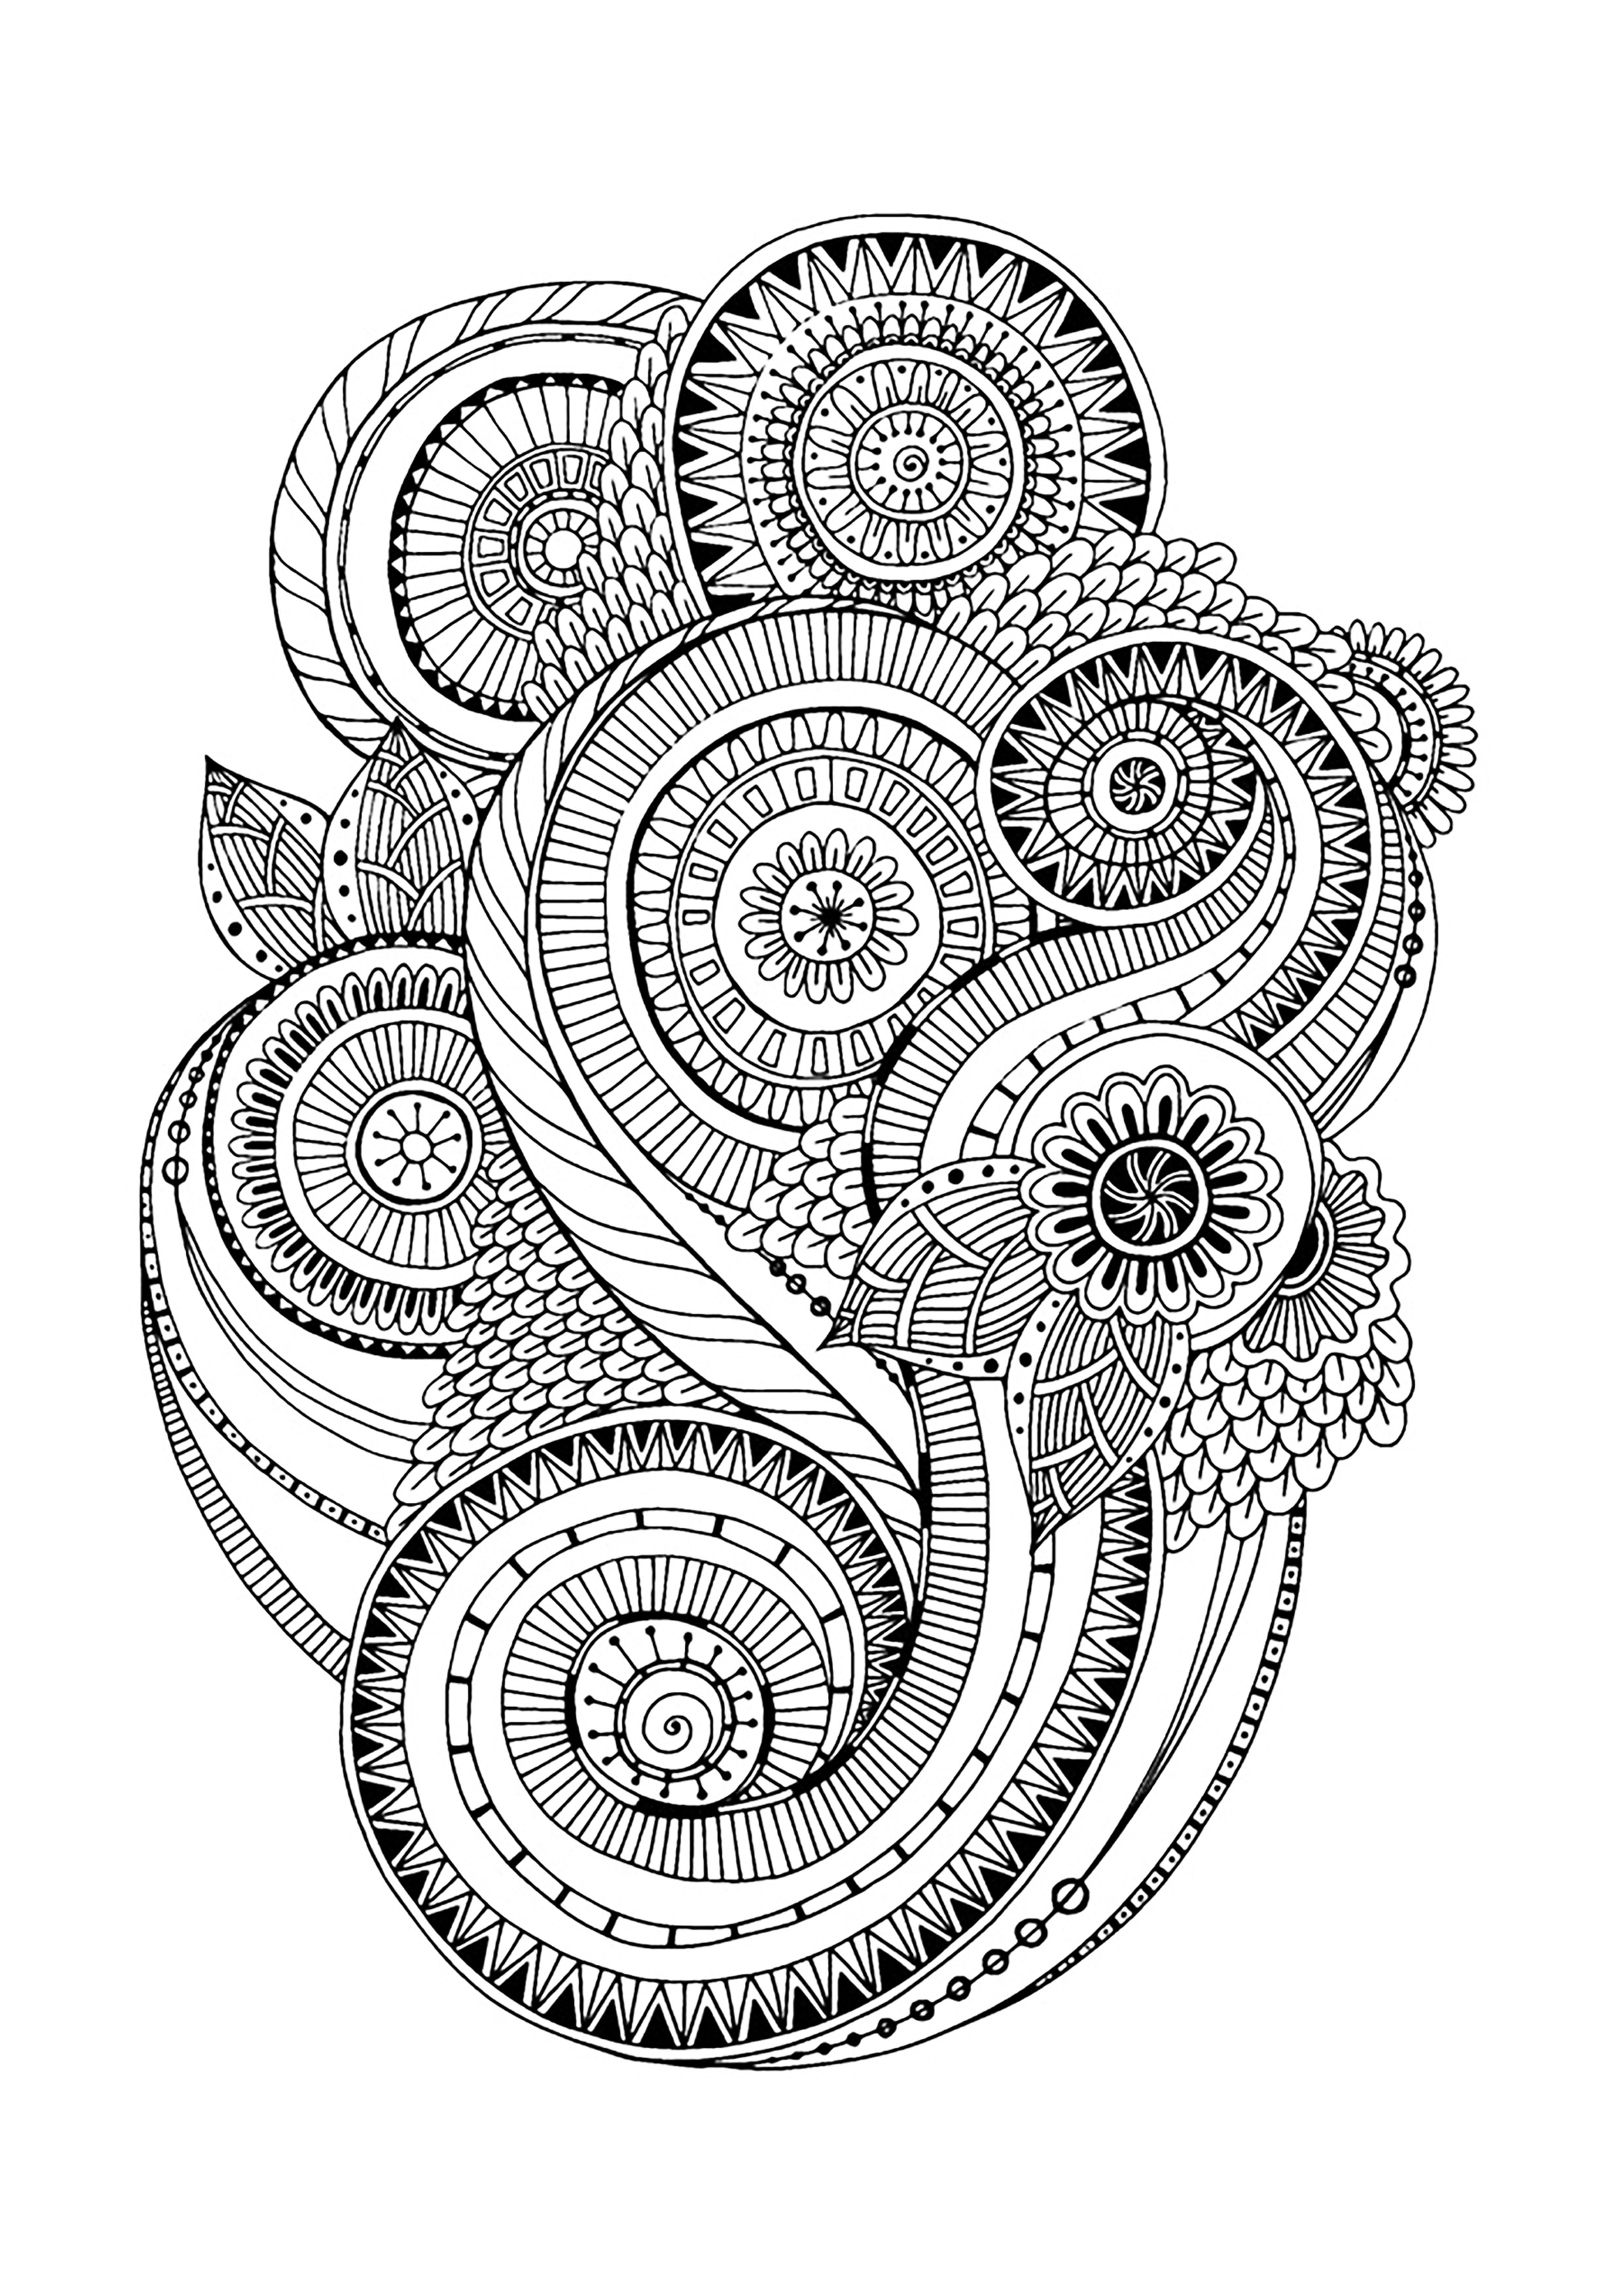 Holiday Coloring Pages free printable jungle coloring pages Accueil u00bb Relaxation u00bb Anti-stress u0026 Art-thu00e9rapie u00bb coloriage zen ...